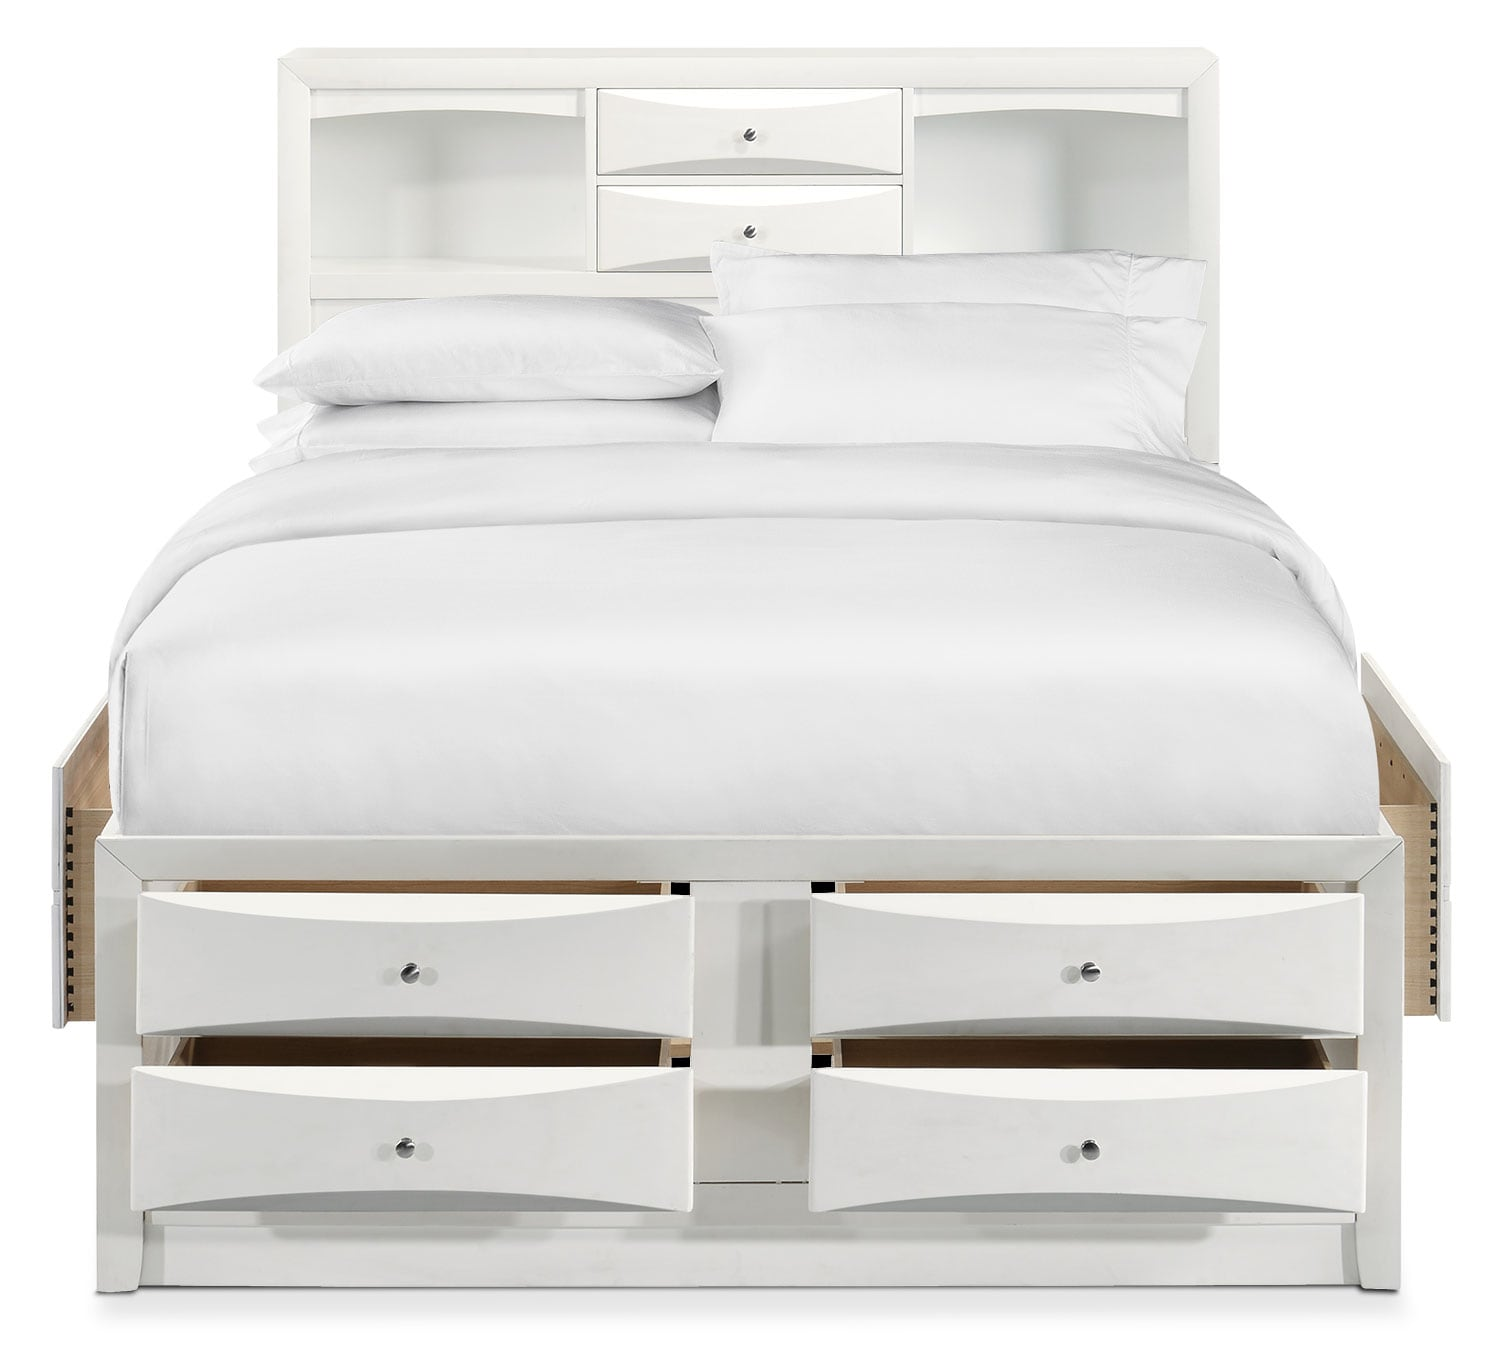 Braden King Bookcase Bed with Storage - White | Value City ...